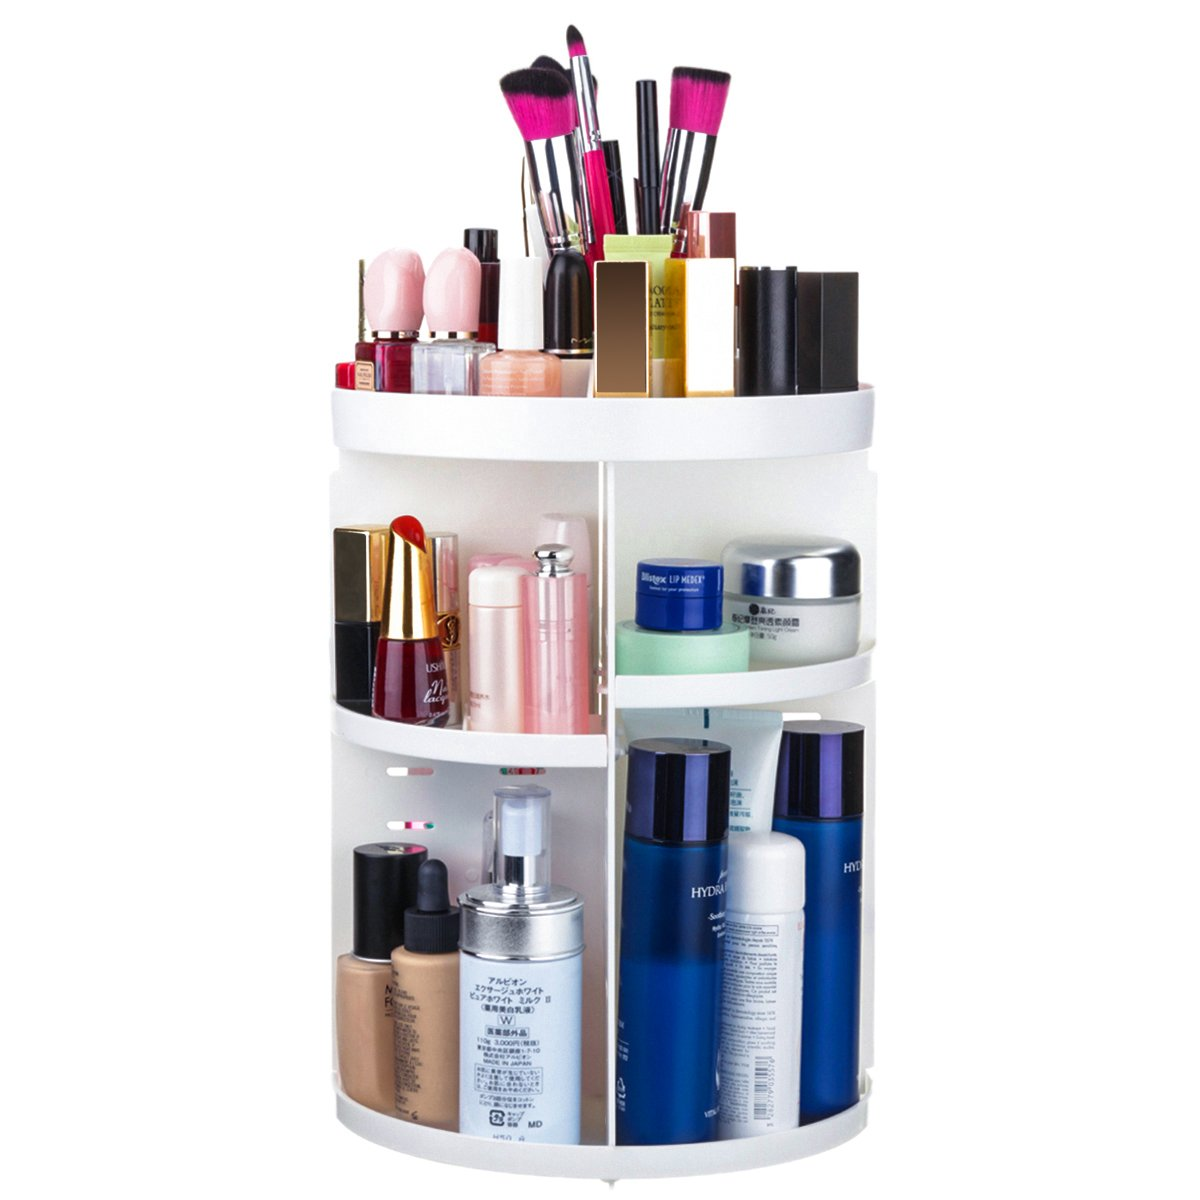 Cosmetic Organizer, TAPCET Makeup Organizer 360 Degree Rotating Adjustable Large Capacity Multi-Function 7 Layers Cosmetic Storage Holder, Great for Countertop, Bathroom, White Asymden_CA